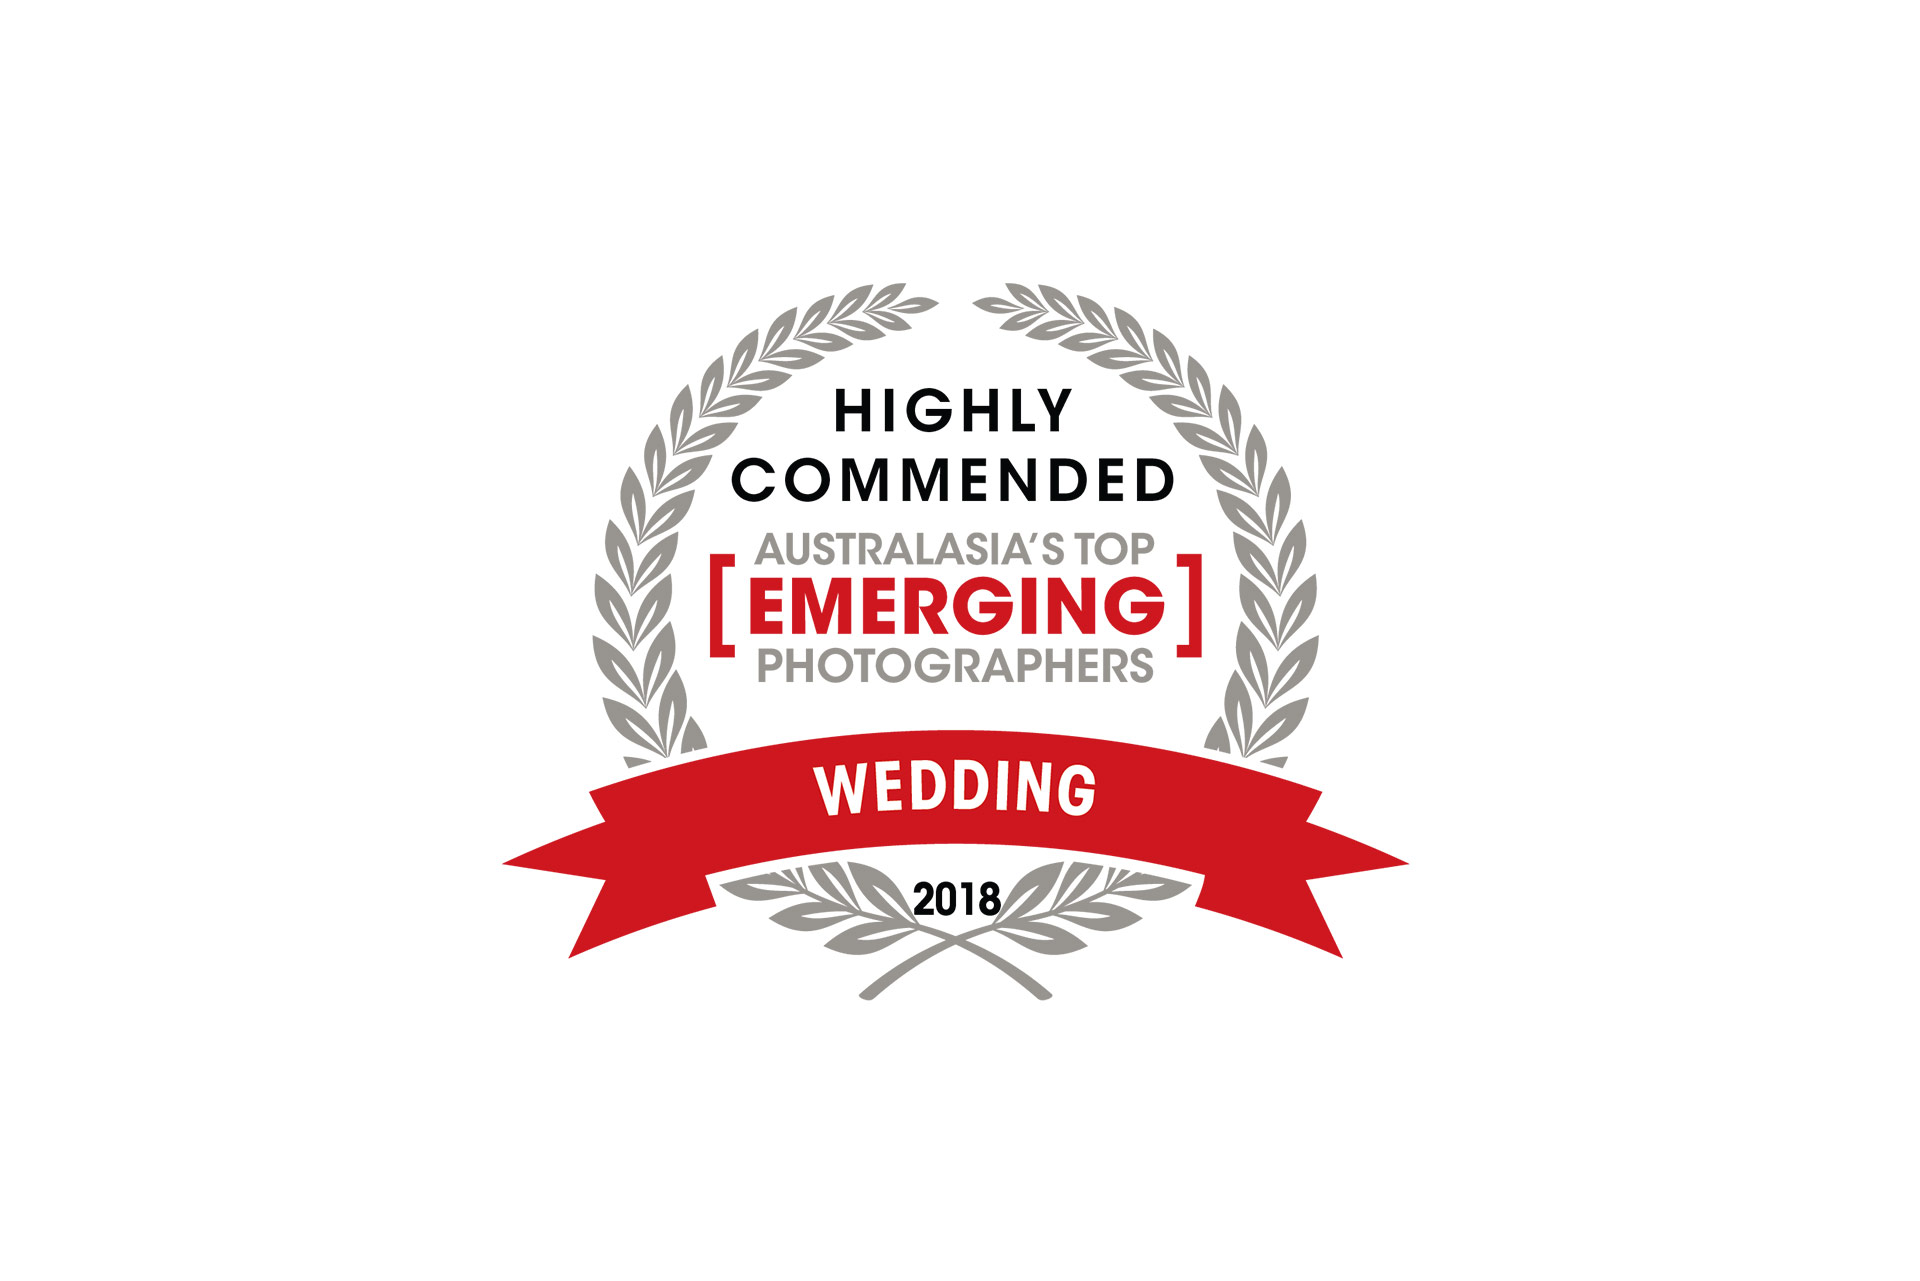 Charlotte Kiri Photography Highly Commended in Australasias Top Emerging Wedding Photographer competition